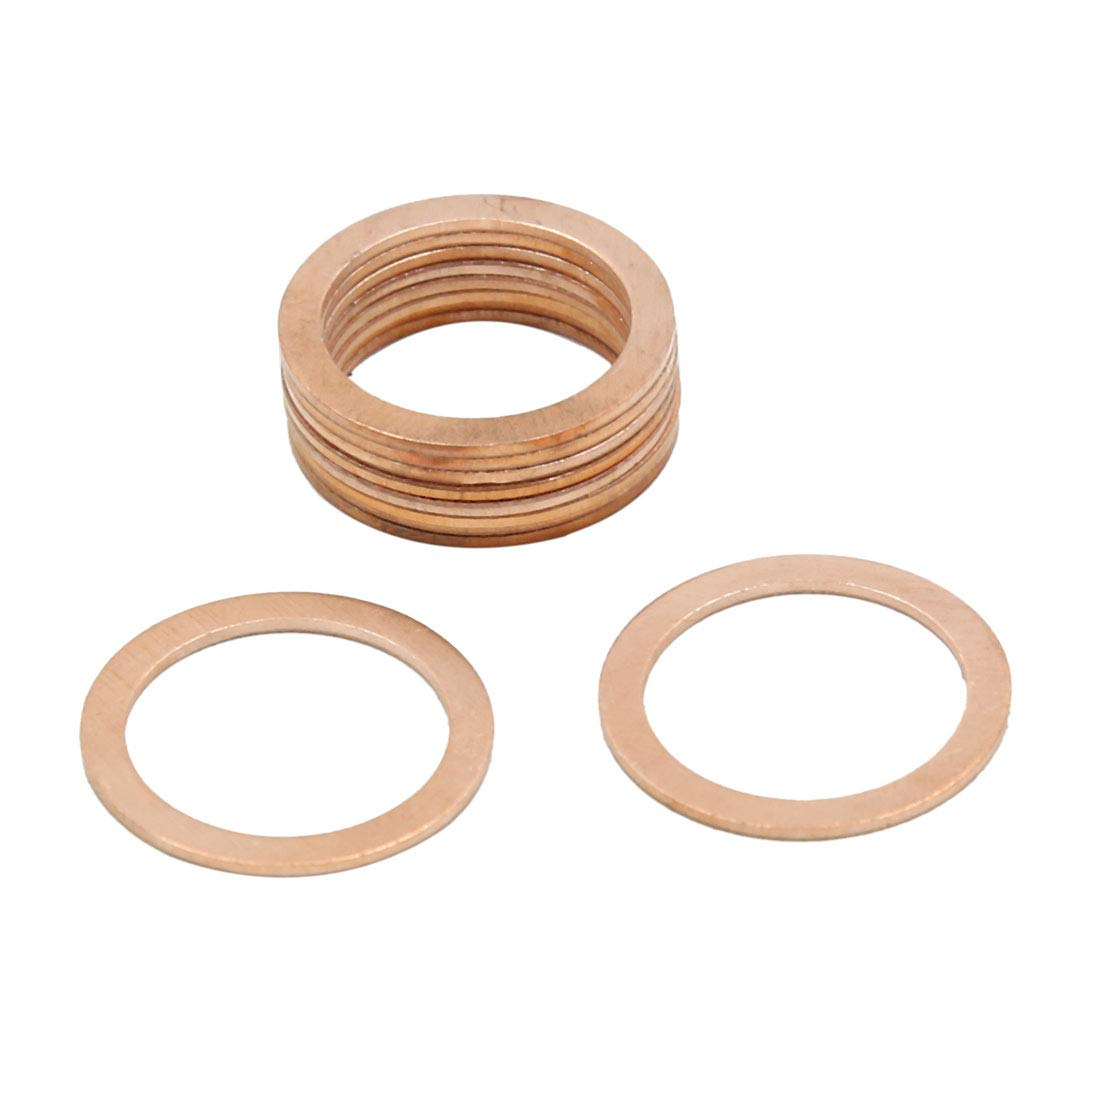 X AUTOHAUX 18mm Inner Dia Copper Crush Washers Flat Car Sealing Gaskets Rings 10pcs